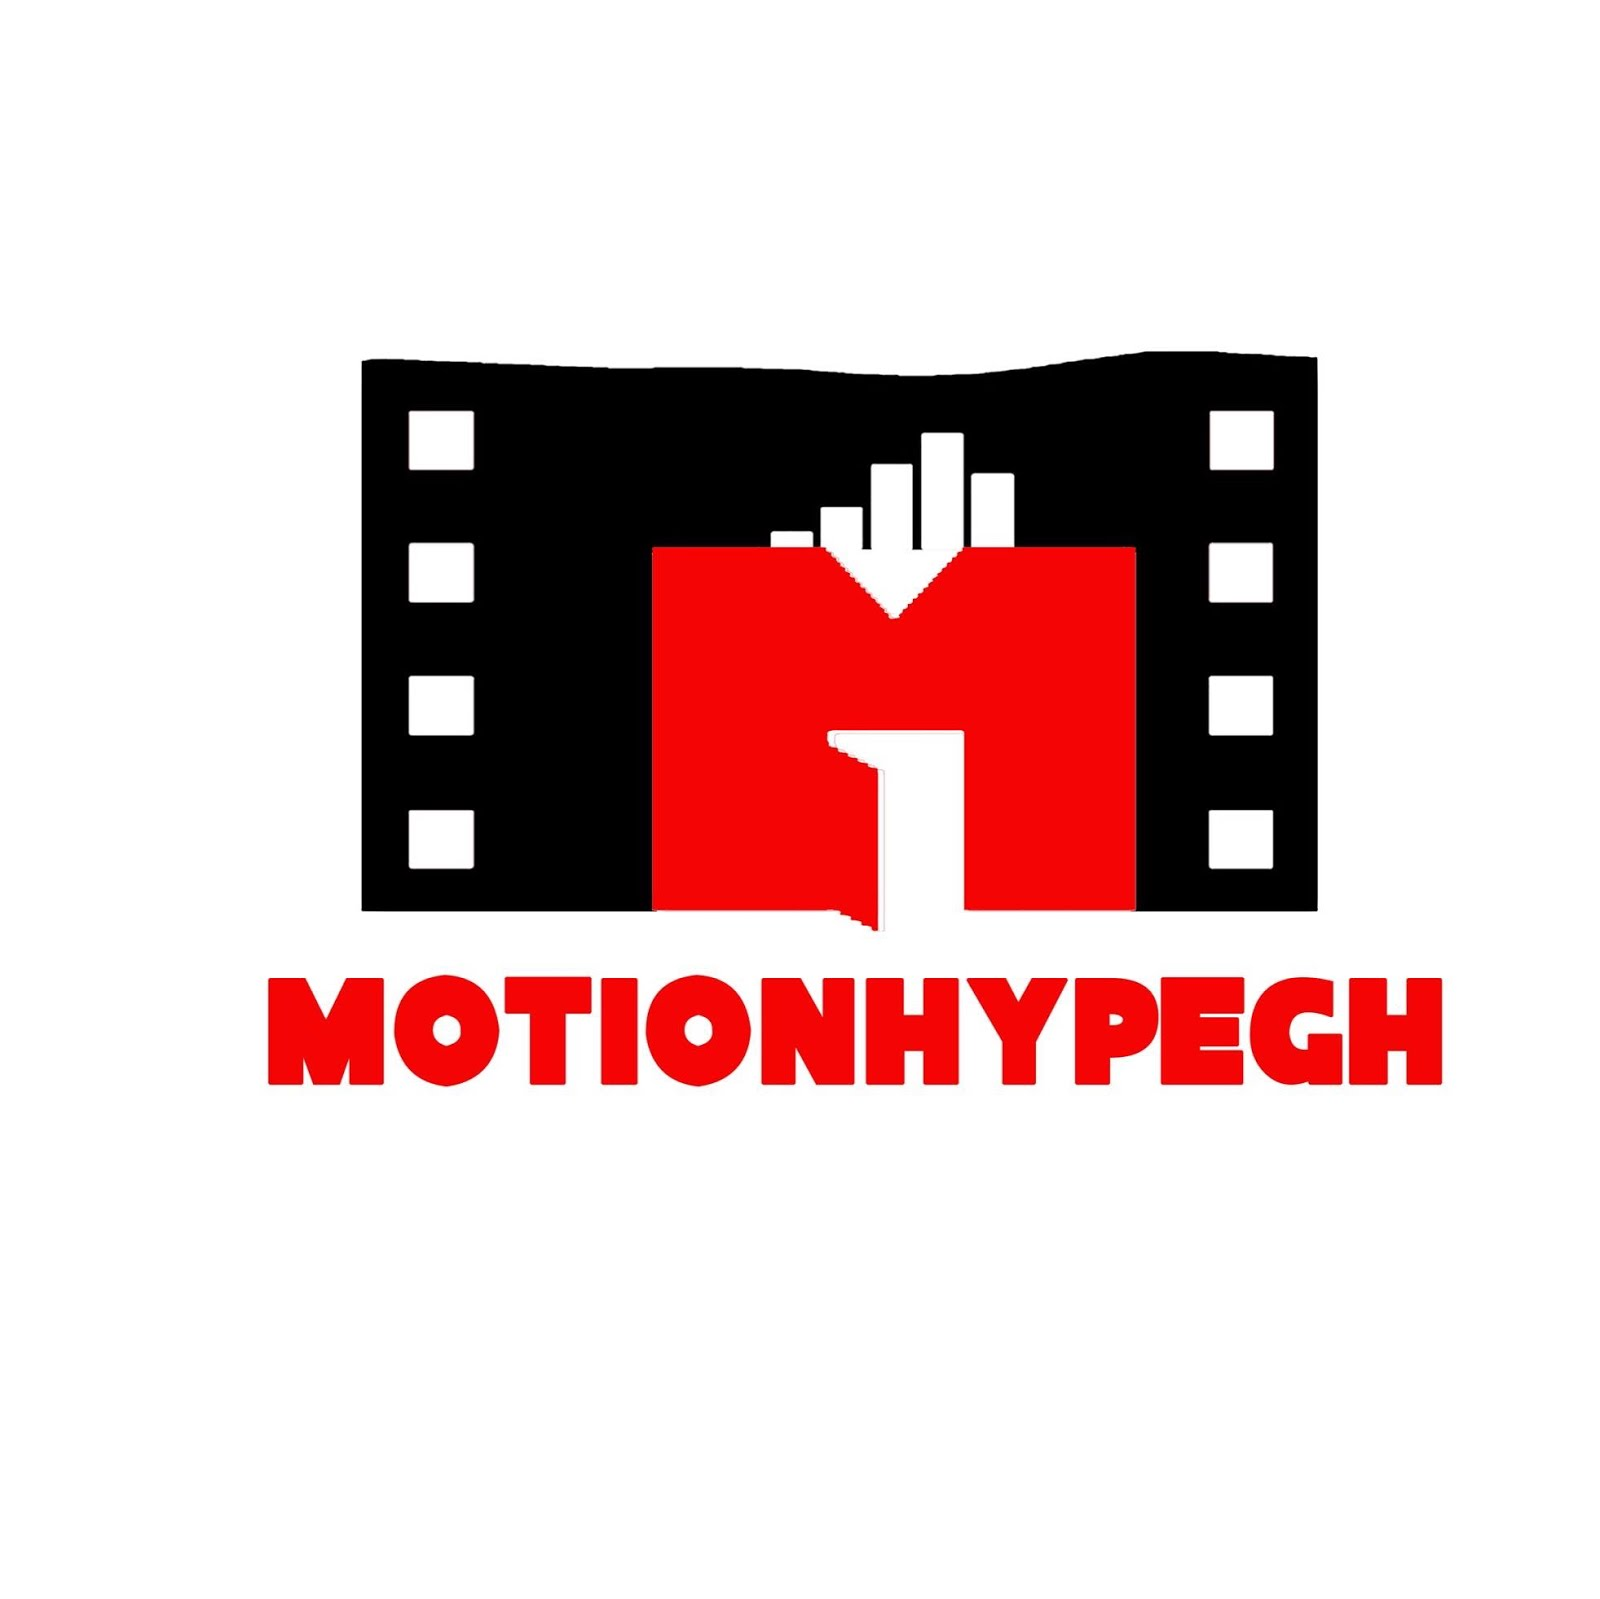 motionhypegh